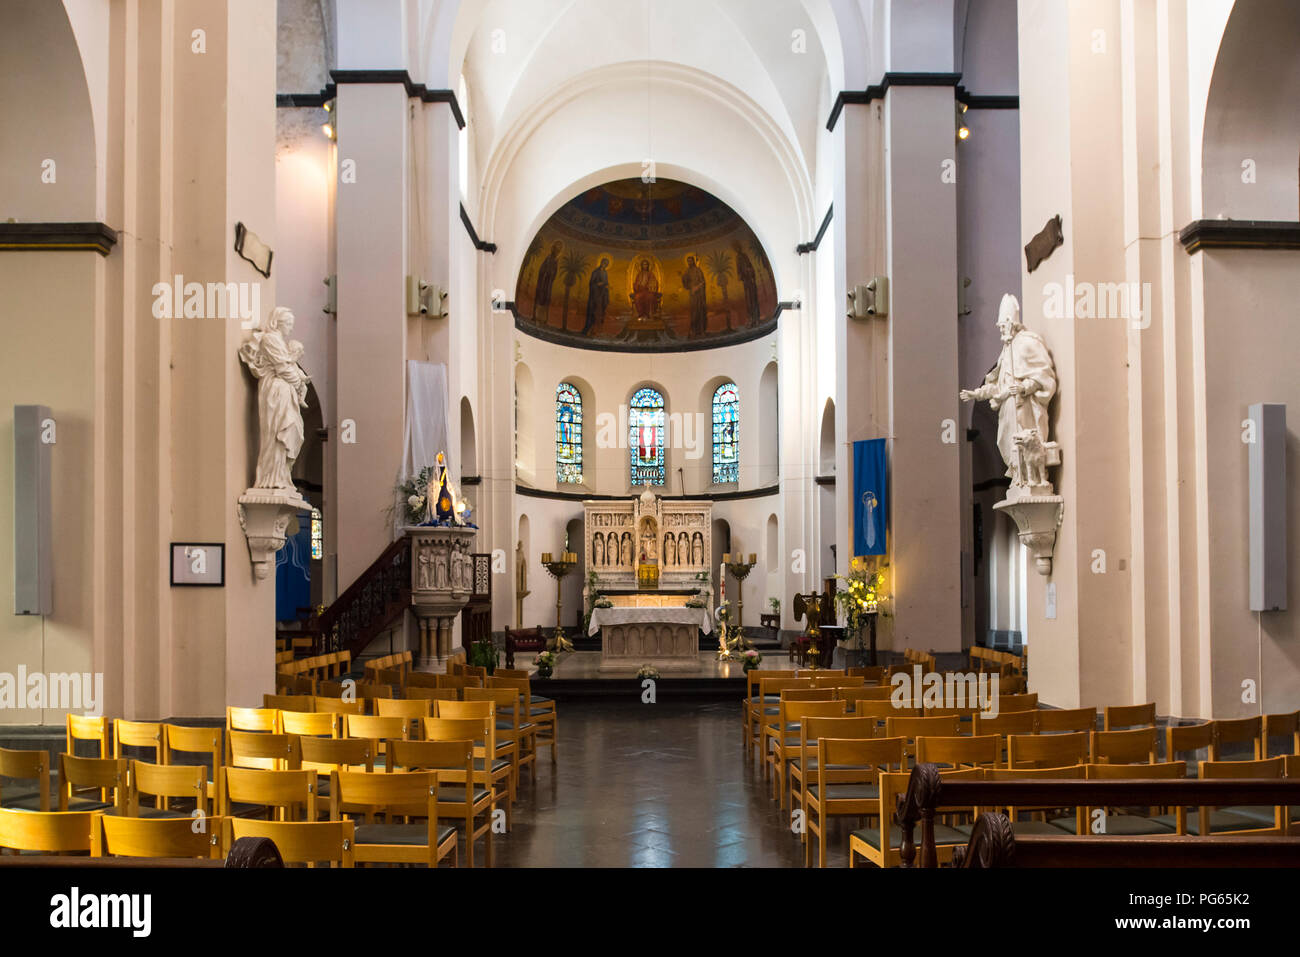 Interior of the Neo-Romanesque Church of St Remacle / Eglise Notre-Dame et Saint Remacle de Spa in the city Spa, Liège, Belgium Stock Photo